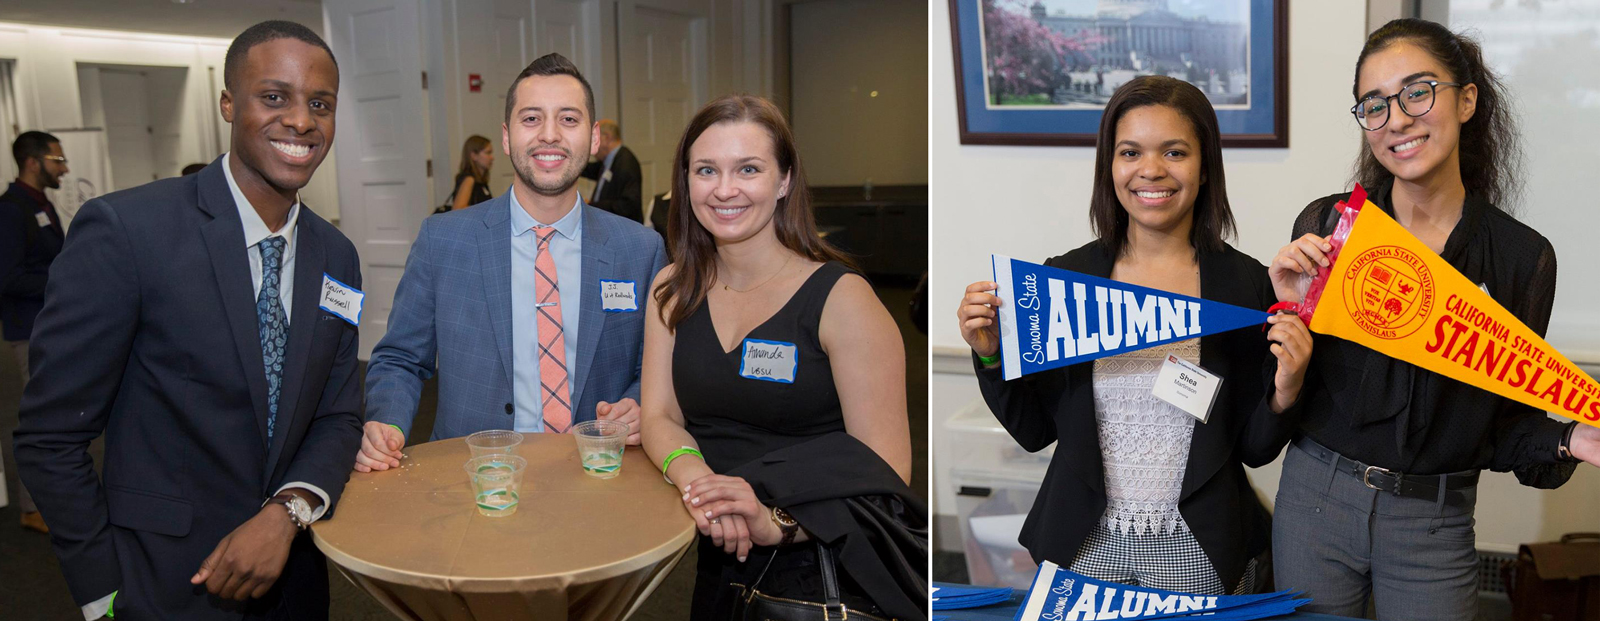 CSU students at Back to College Night – Washington, D.C